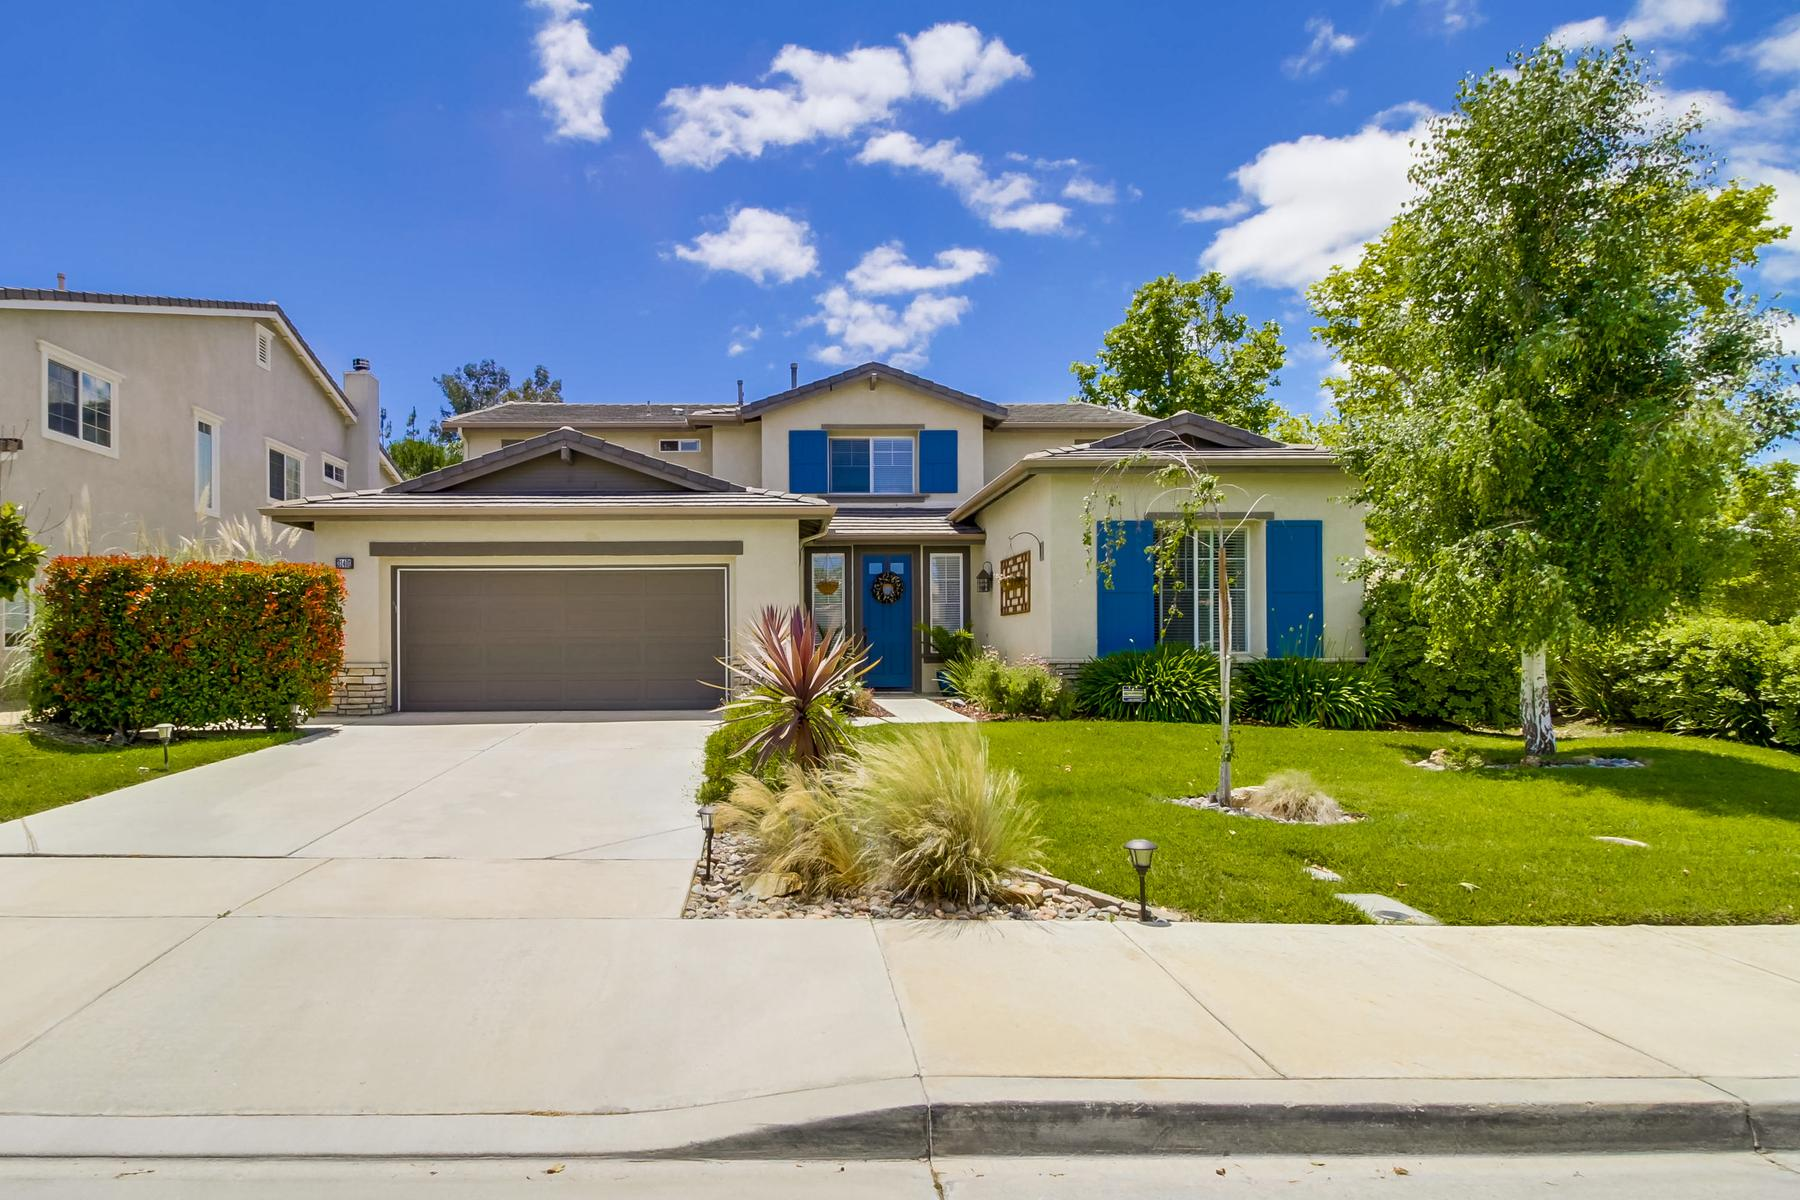 Single Family Home for Sale at 31401 Chemin Chevalier Temecula, California 92591 United States